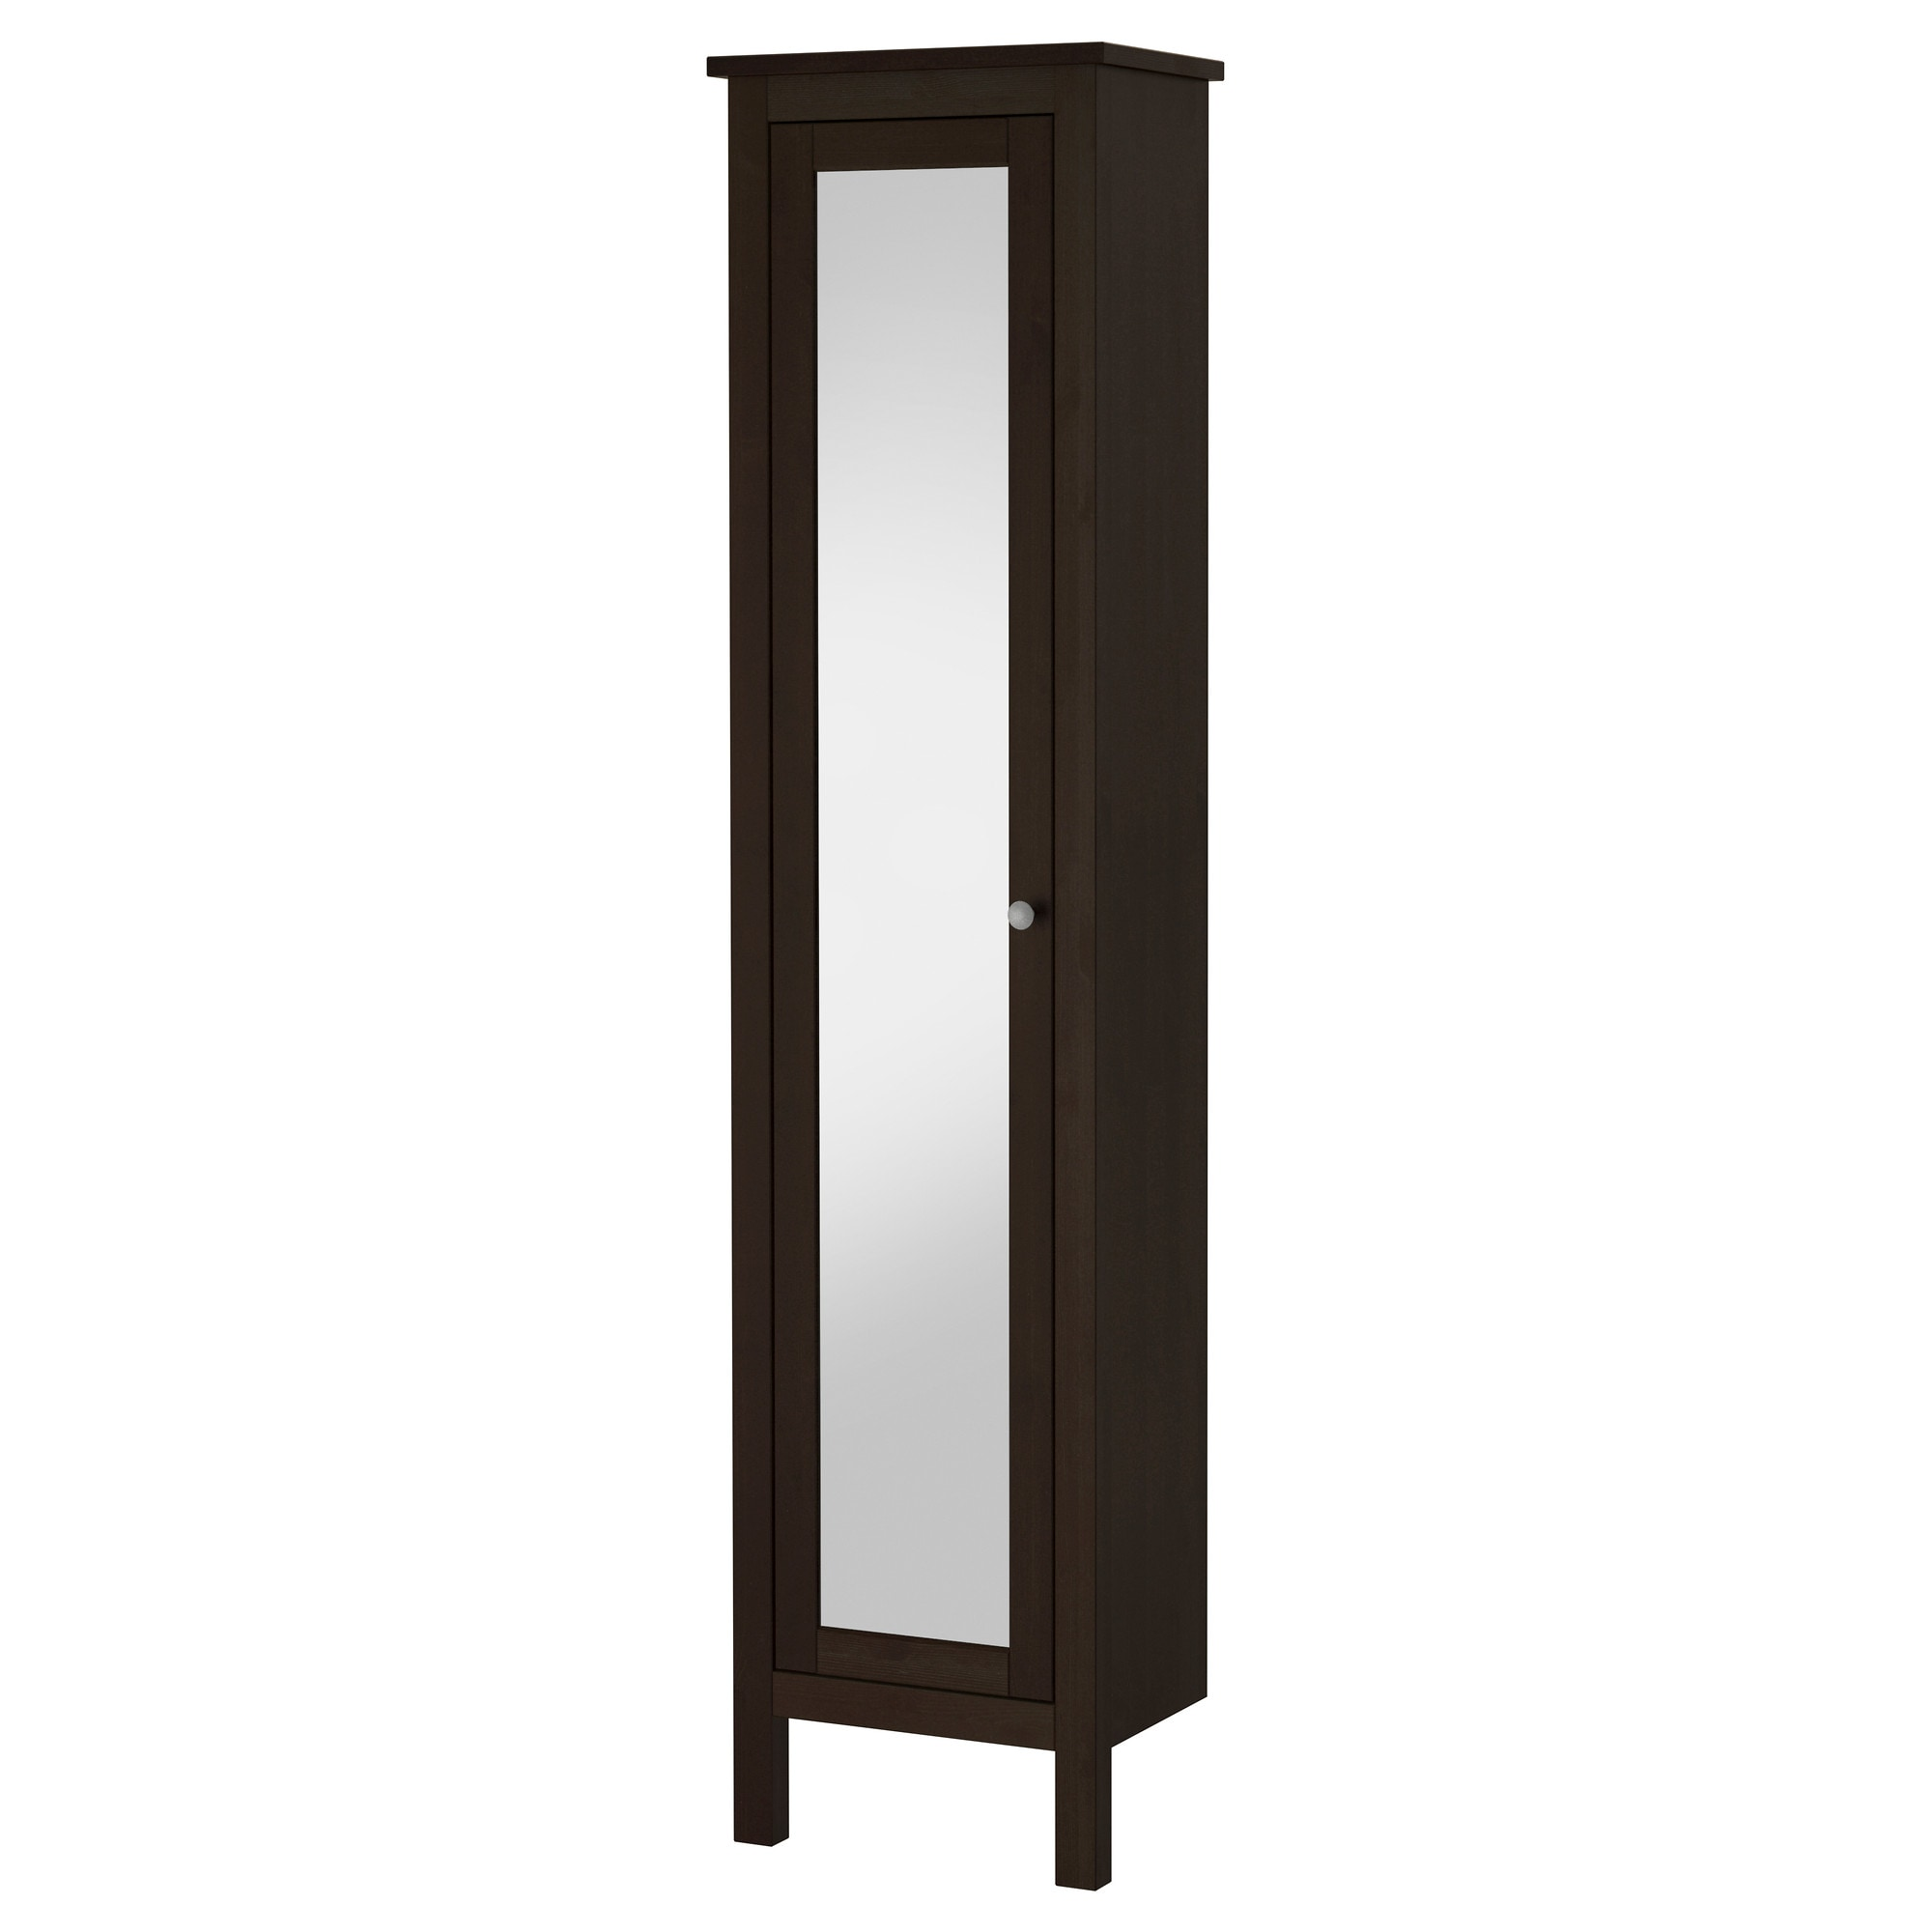 HEMNES high cabinet with mirror door  black brown stain Width  19 1. Bathroom Vanities   Cabinets   IKEA